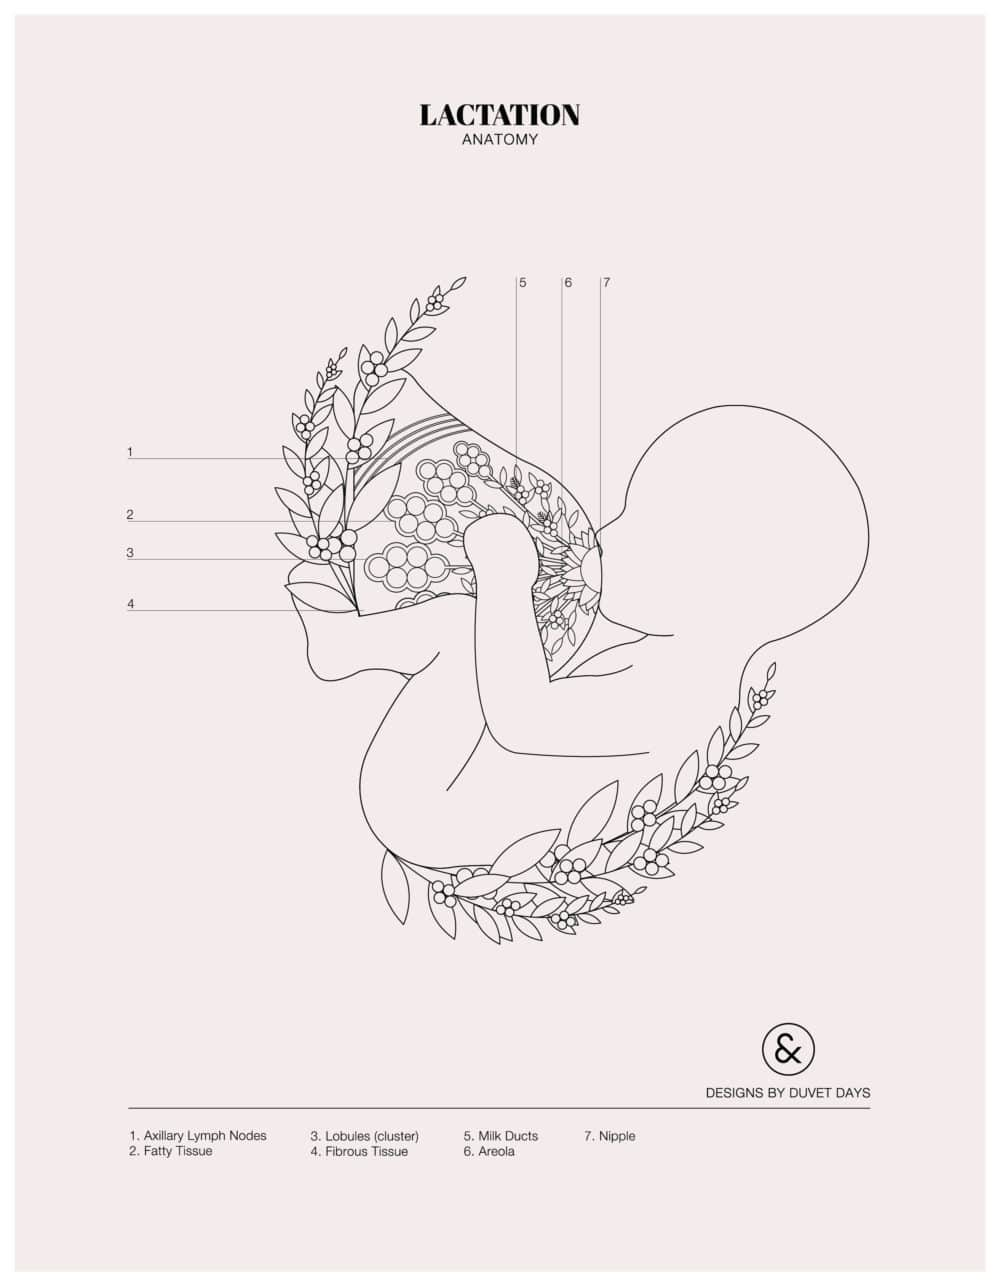 Designs By Duvet Days_8.5x11_Lactation_Colouring Sheet_Preview